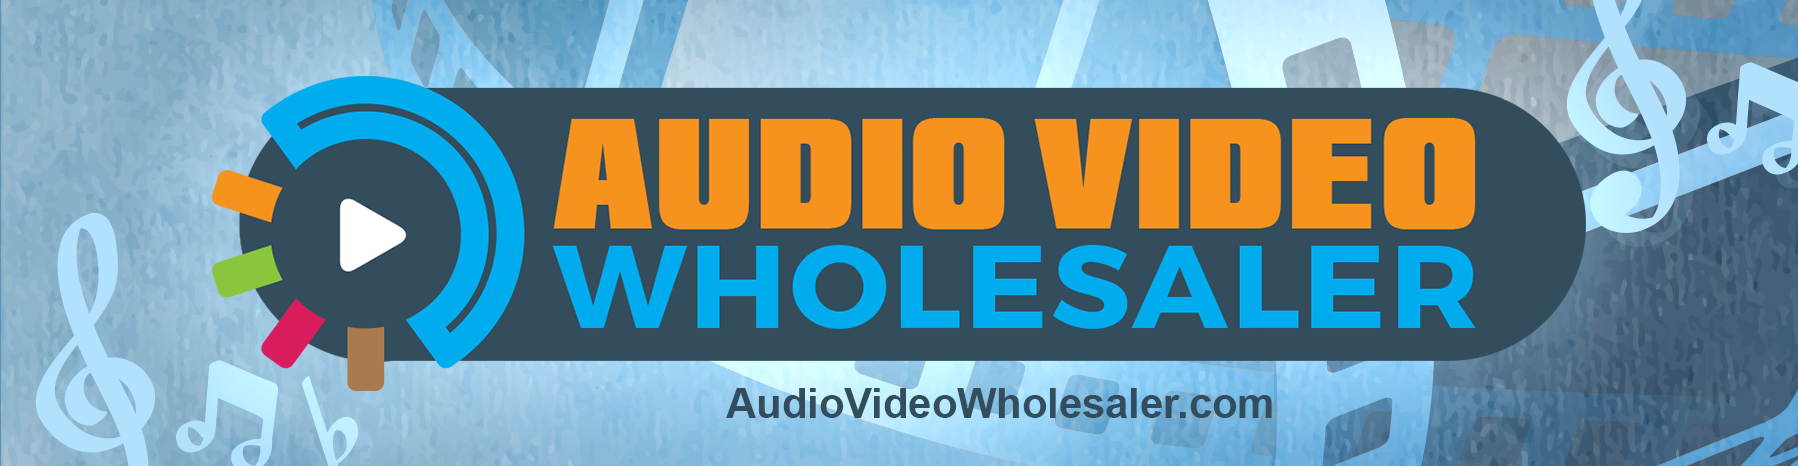 Audio Video Wholesaler header image